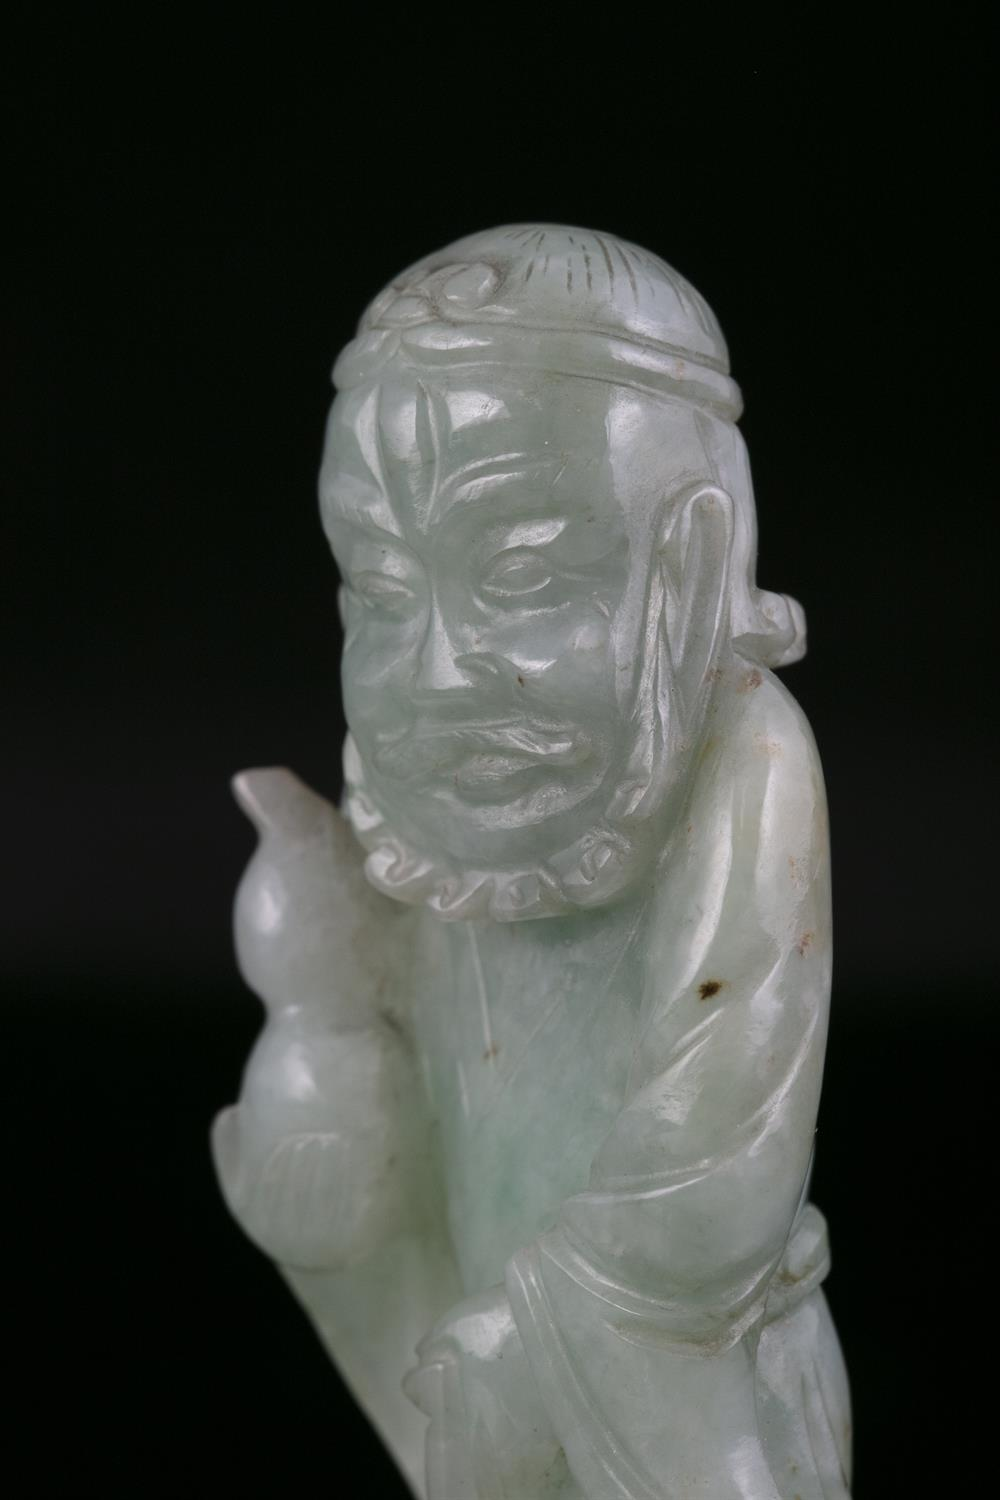 A JADEITE JADE FIGURE OF A STANDING TIEGUAI LI China, Circa 1900 The immortal is depicted with a - Image 17 of 20